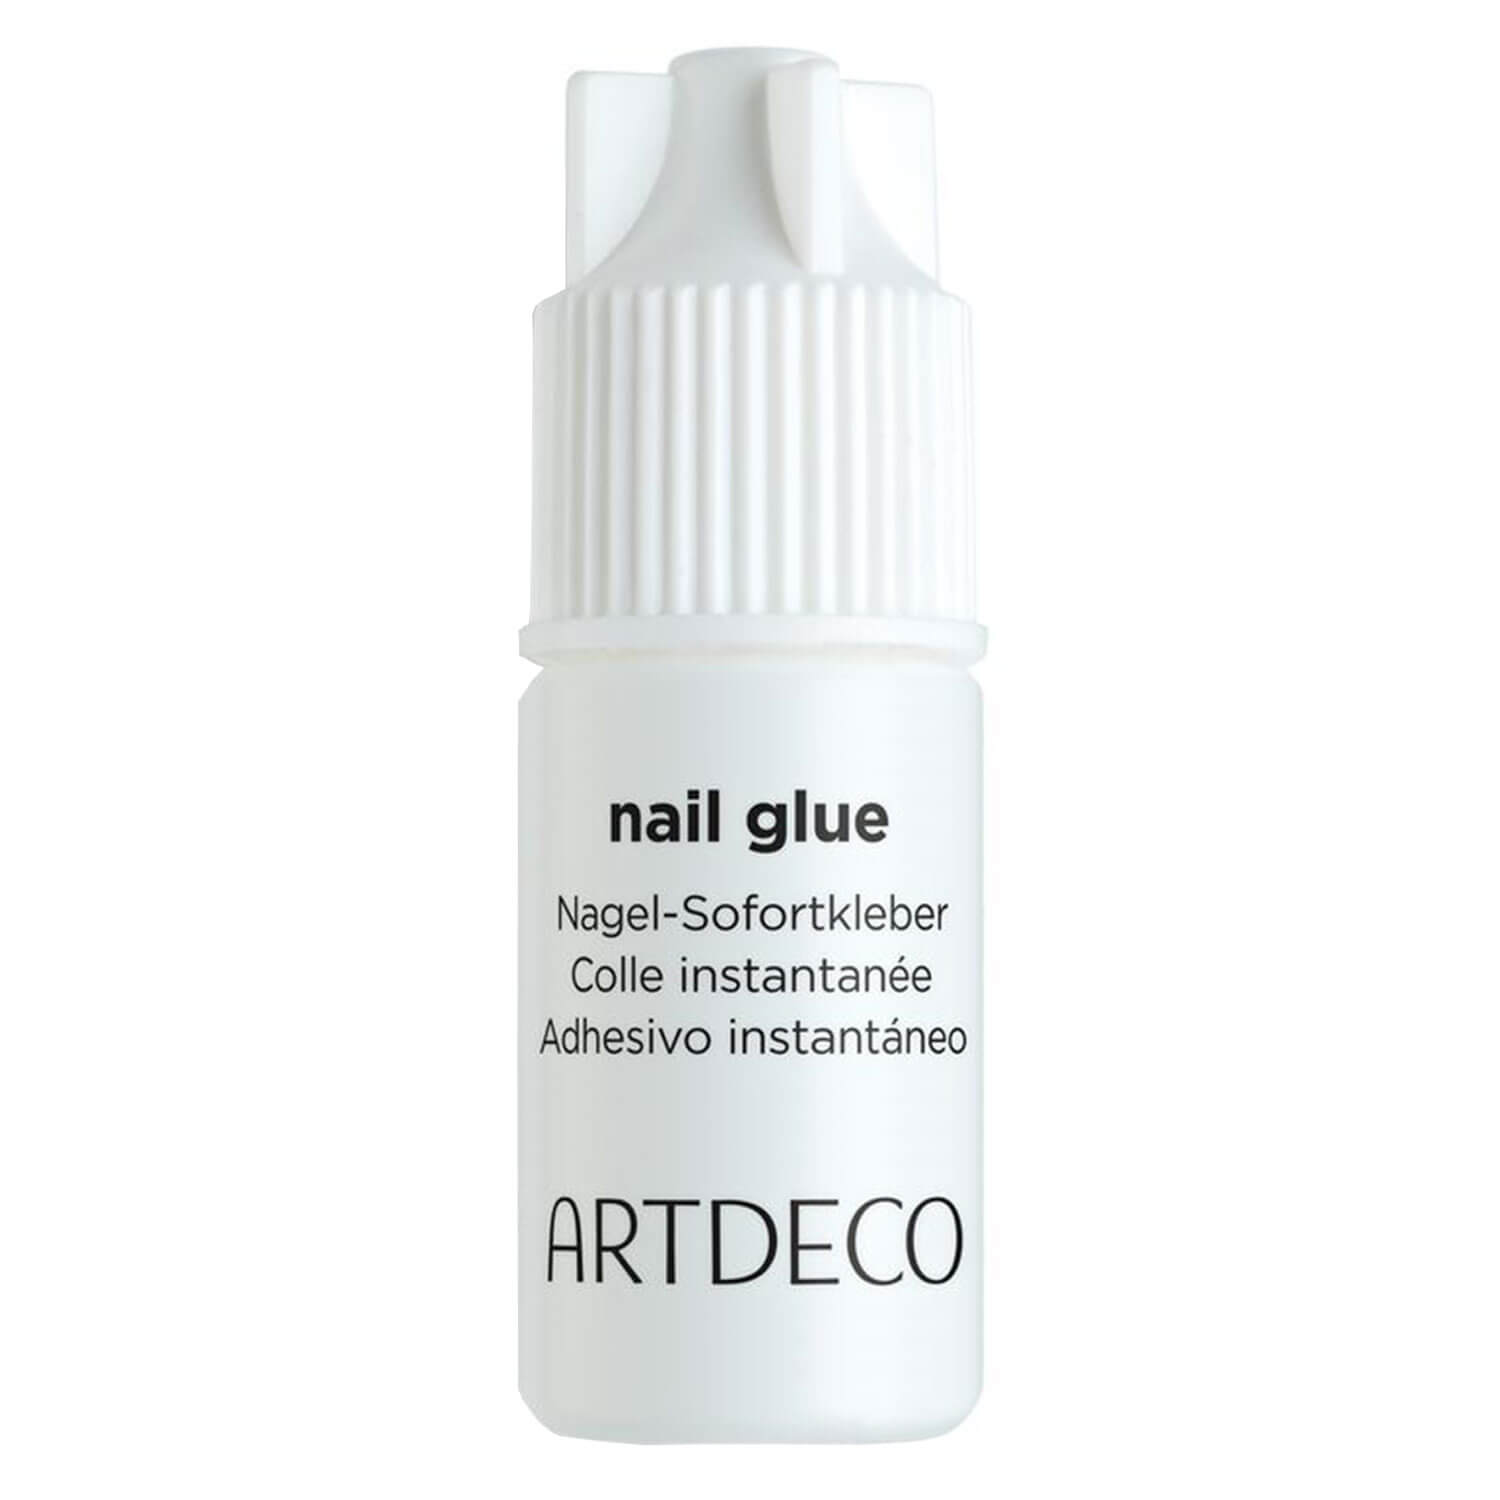 Artdeco Nail Care - Nail Glue